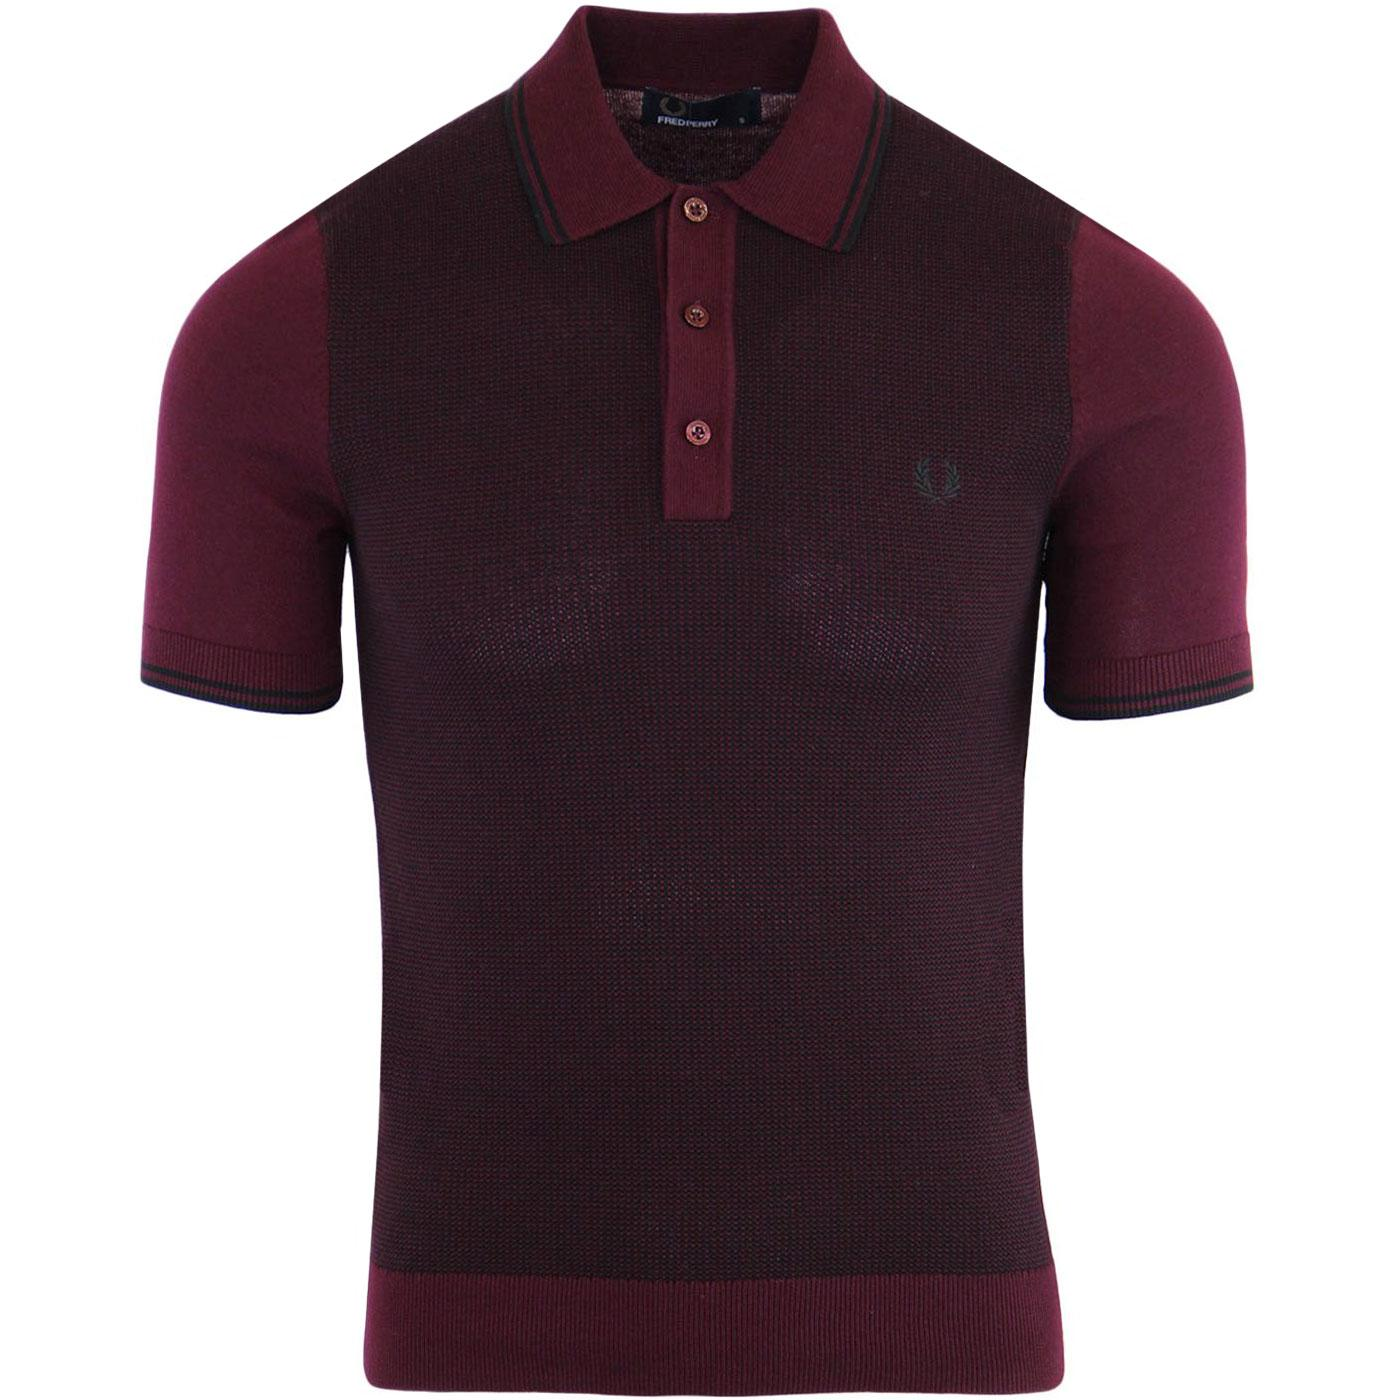 FRED PERRY Men's Knitted Mod Two-Tone Polo Shirt M